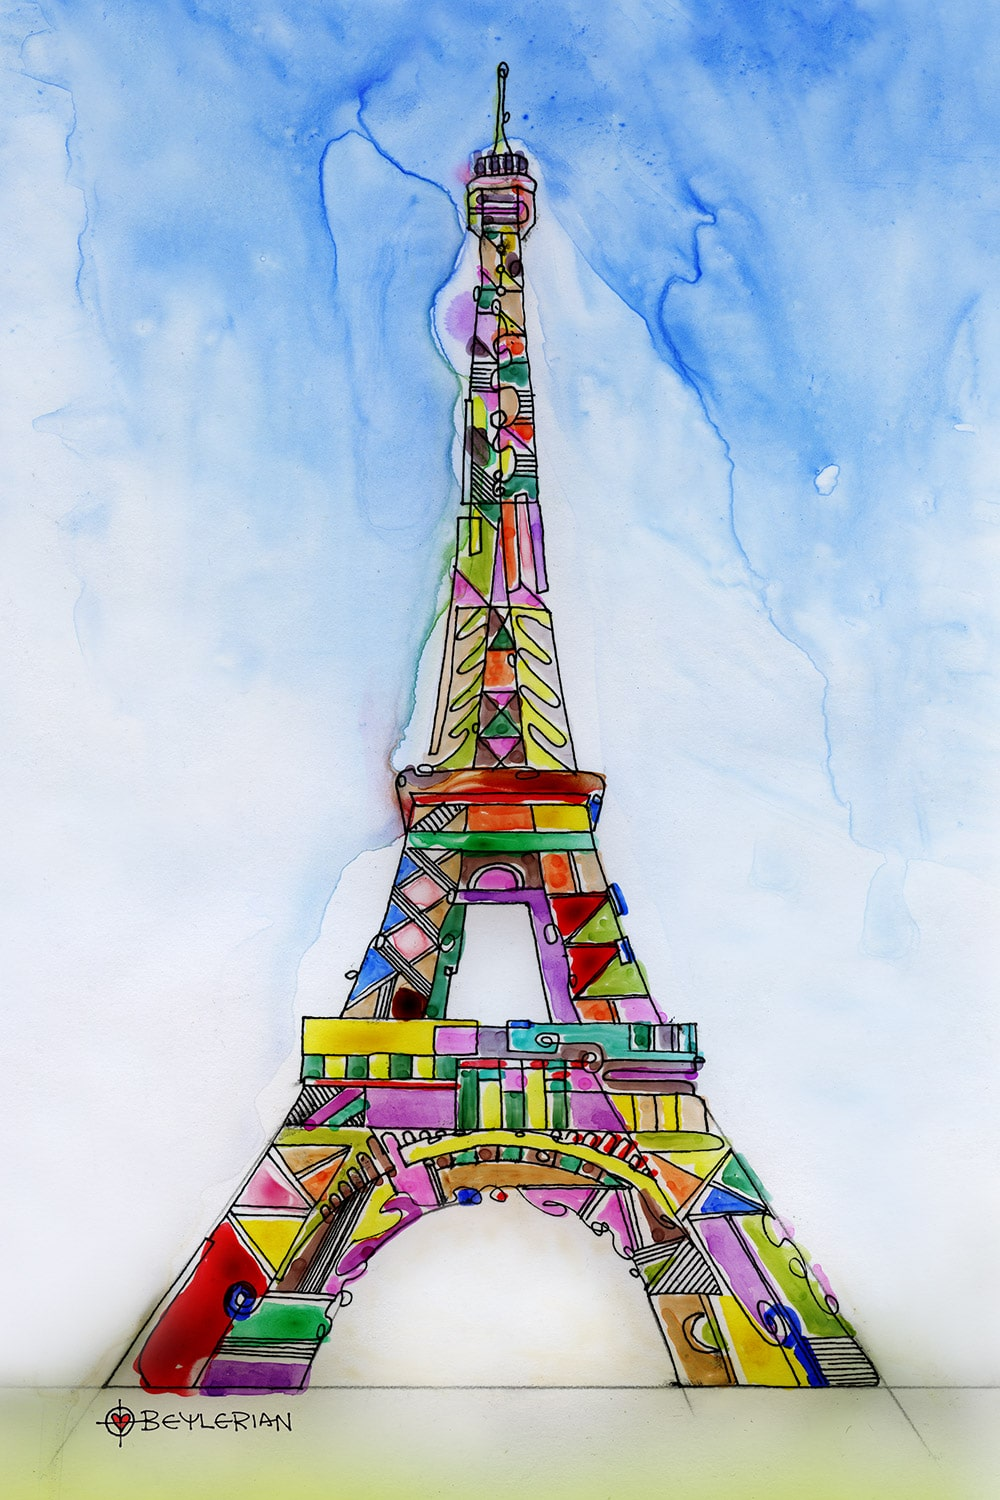 The Eiffel tower art